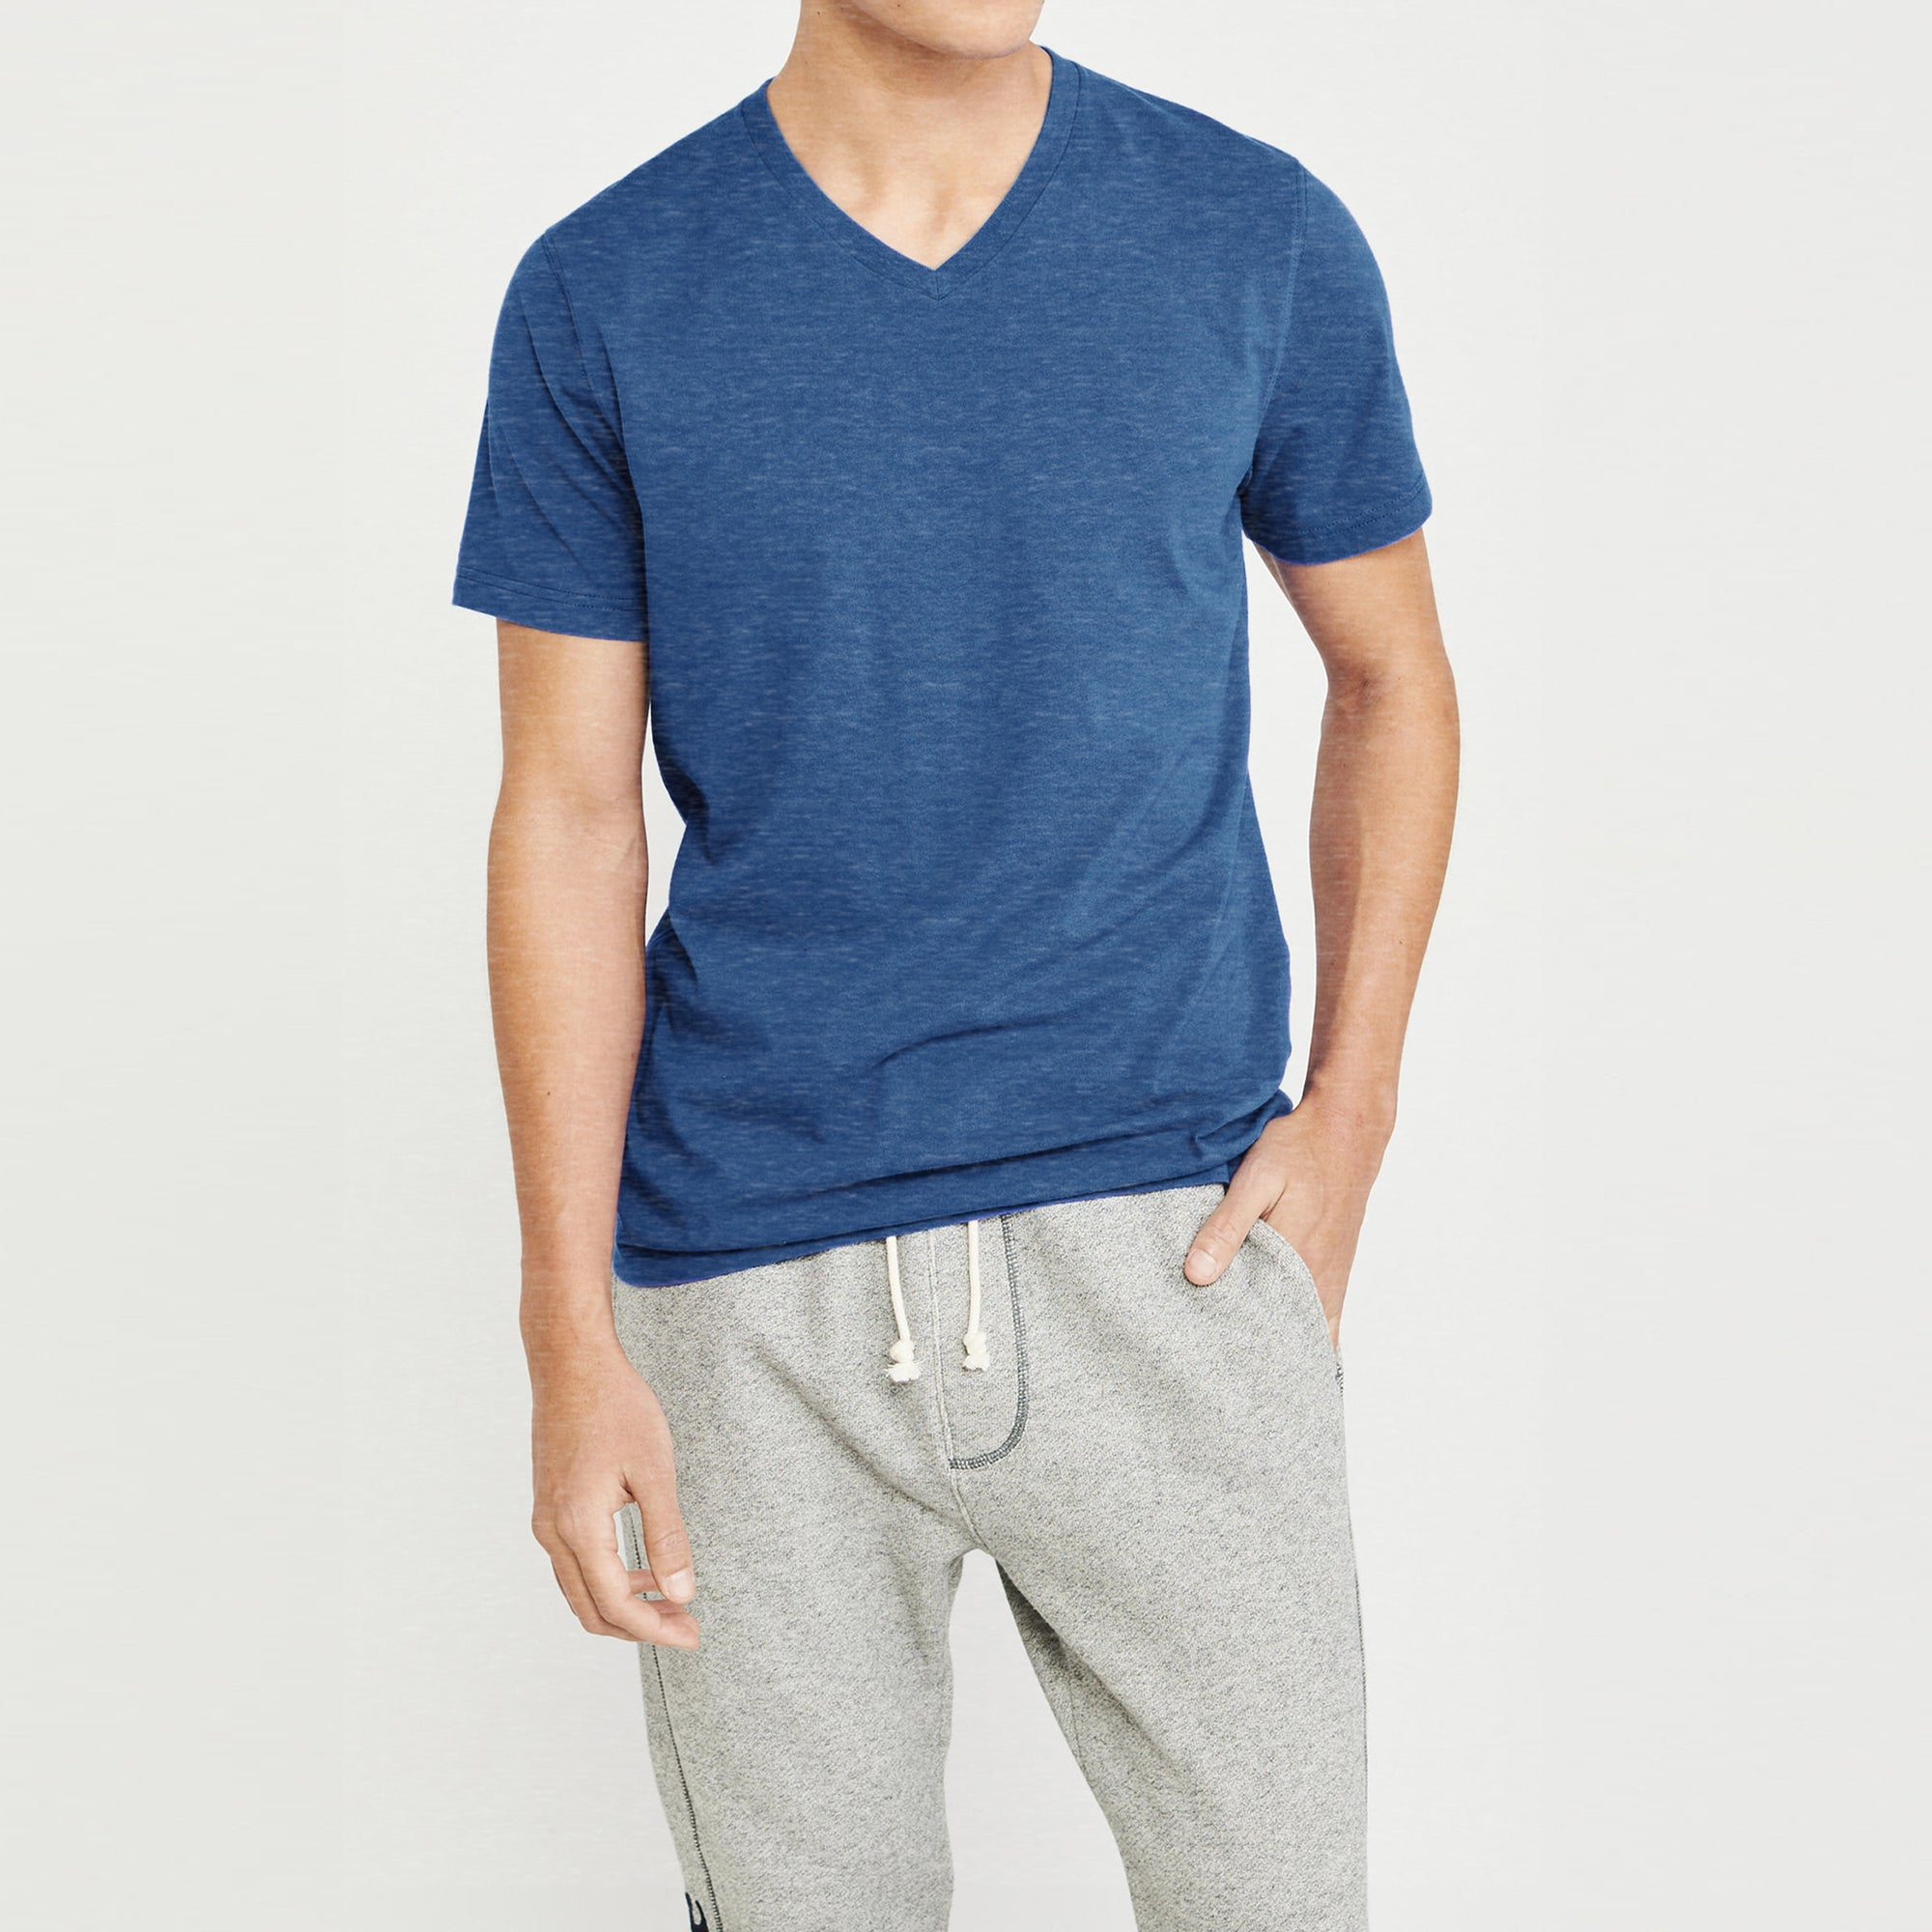 Beverly Hills V Neck Half Sleeve Tee Shirt For Men-Dark Blue Melange-BE8903